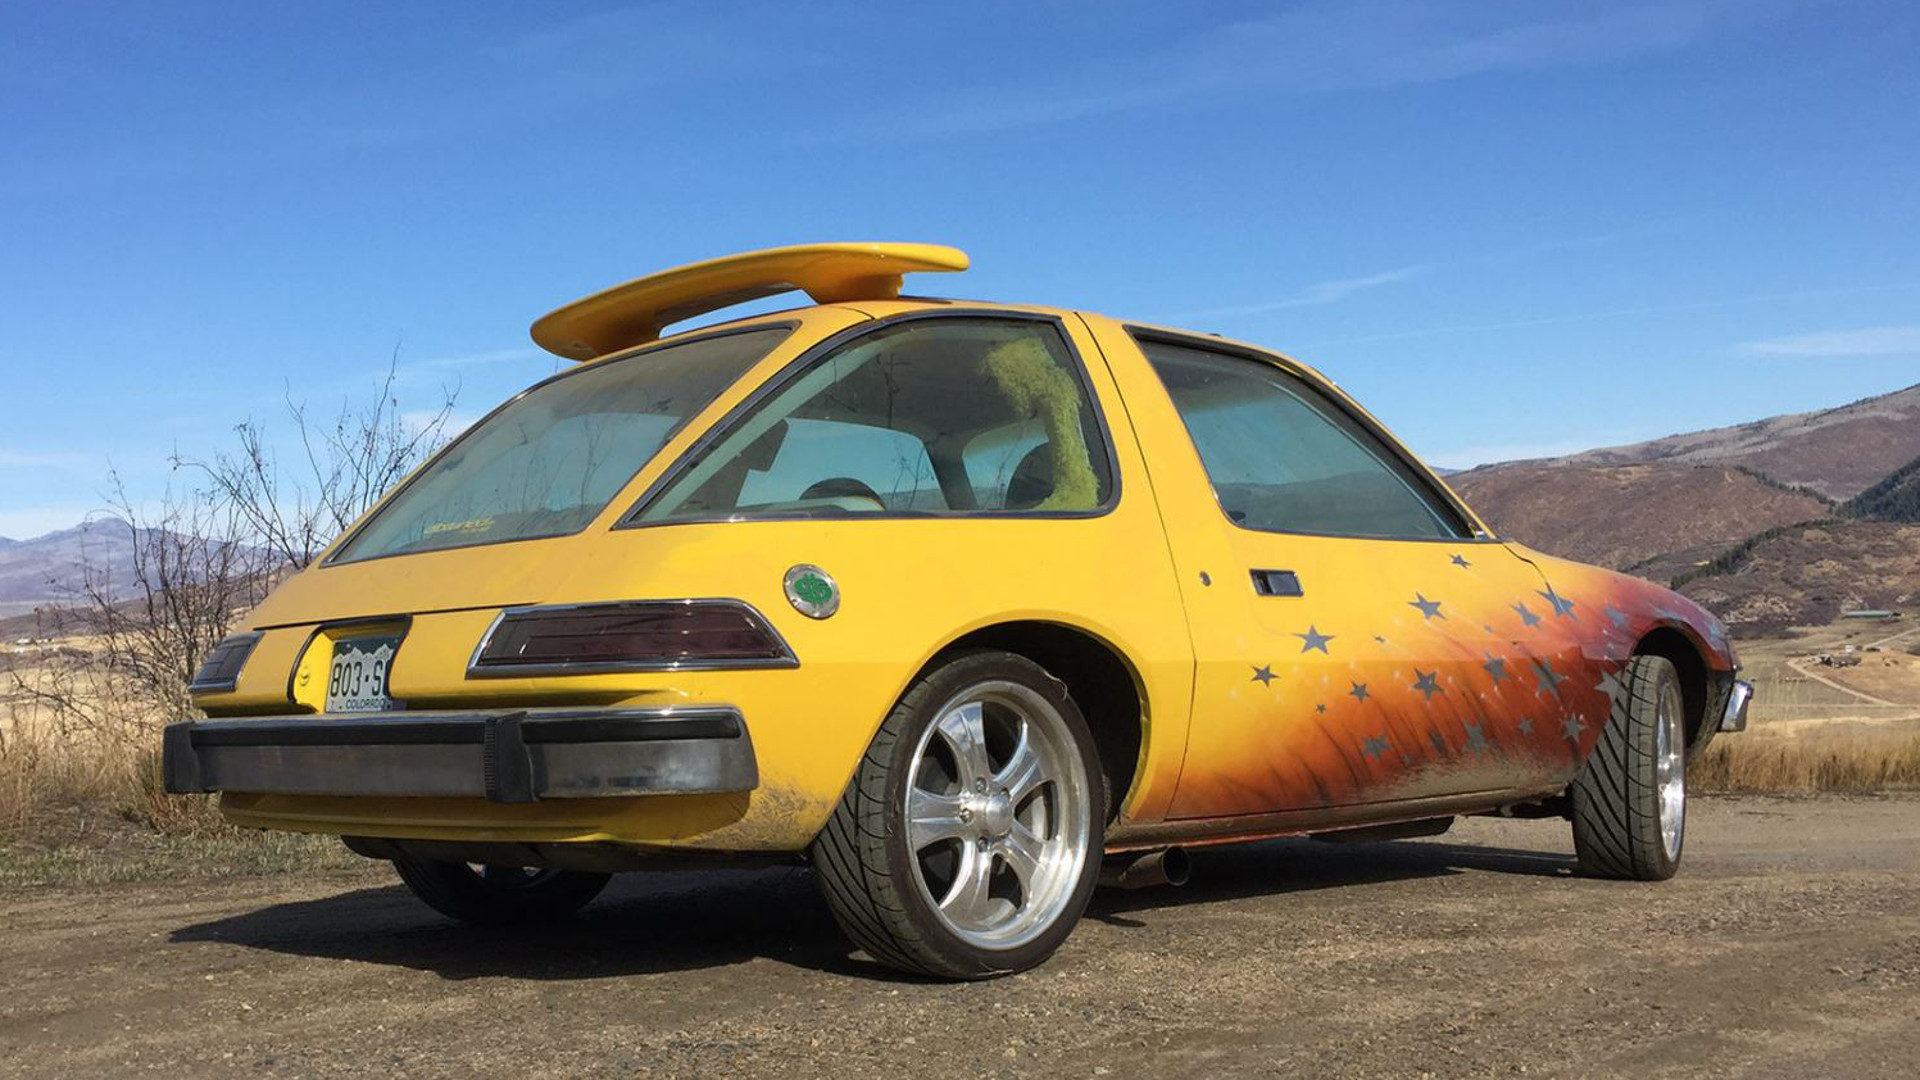 West Coast Customs Cars For Sale >> This Pimp My Ride AMC Pacer for Sale in Denver Has Seen ...